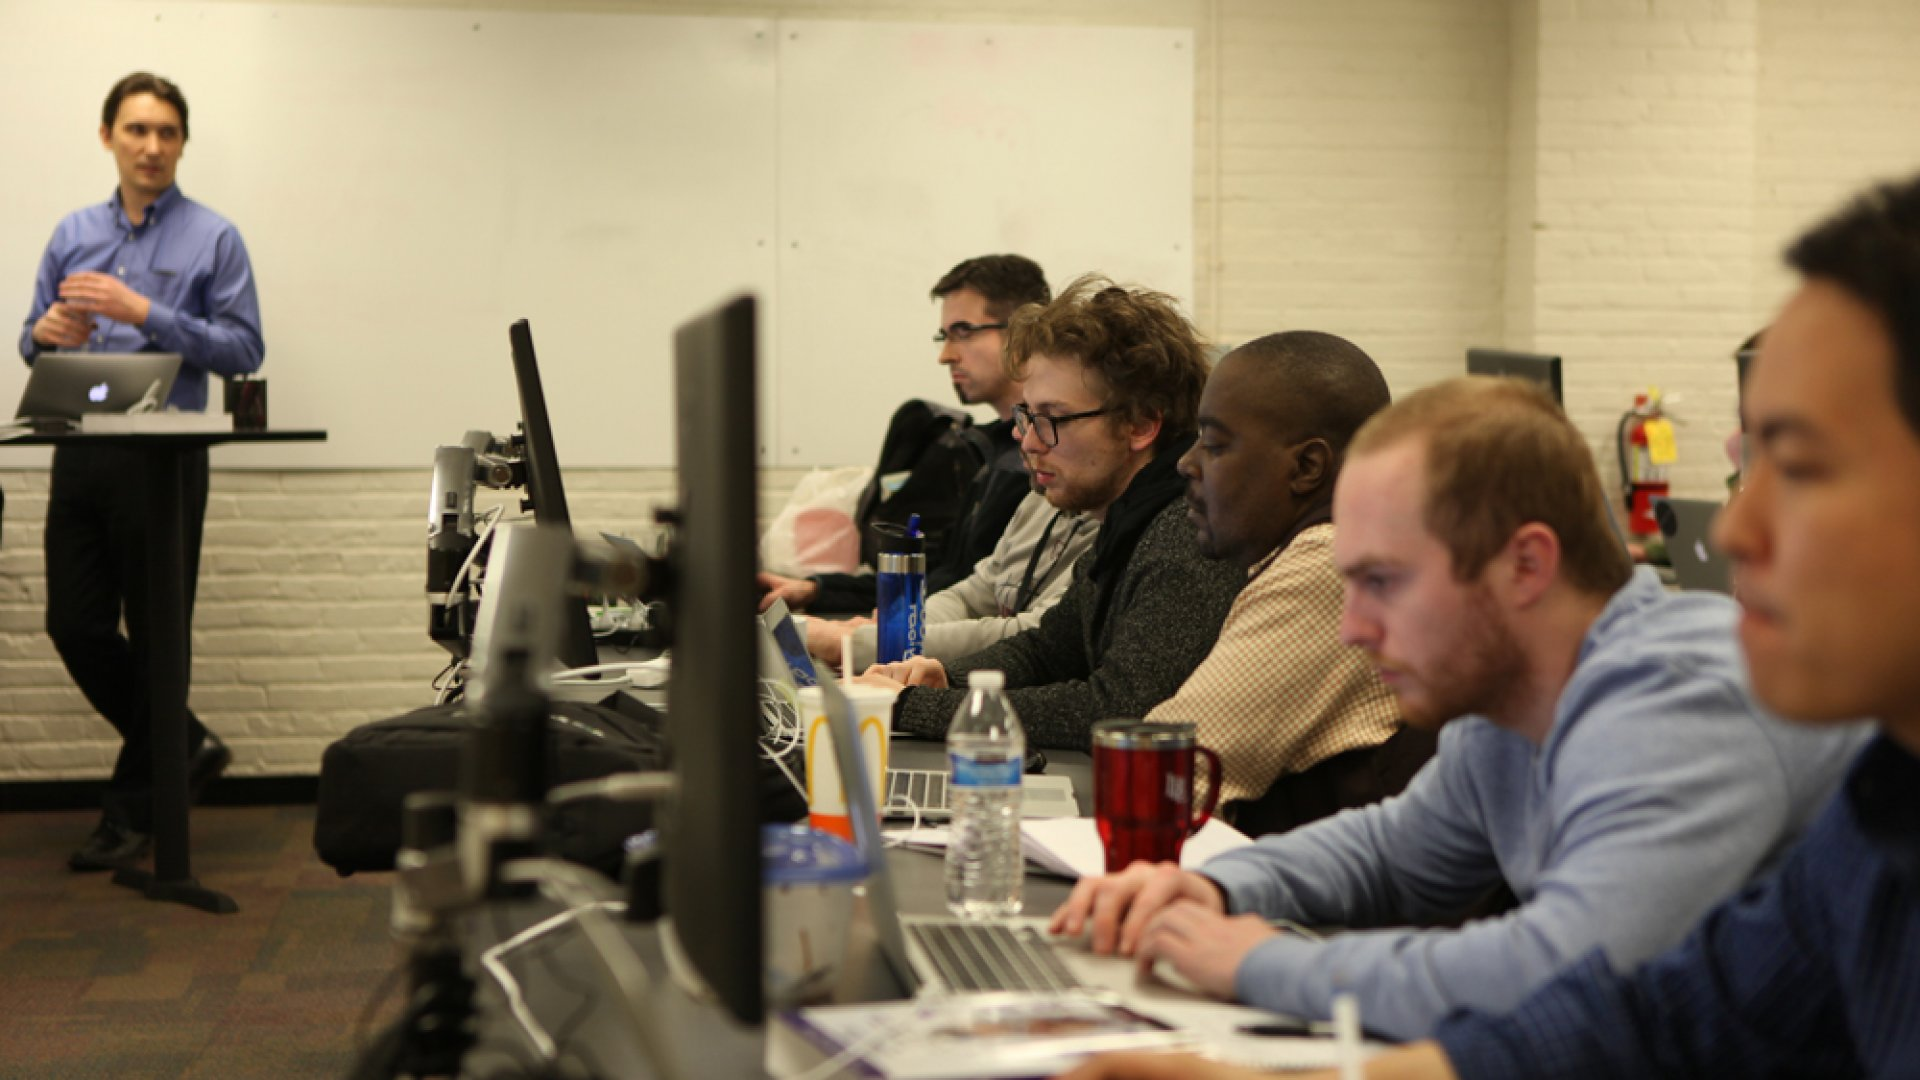 After 19 students at Devschool lost $100,000 in tuition, the coding bootcamp market has been in a state of self-evaluation. Above, Tech Elevator chief academic officer David Wintrich leads a software engineering class.